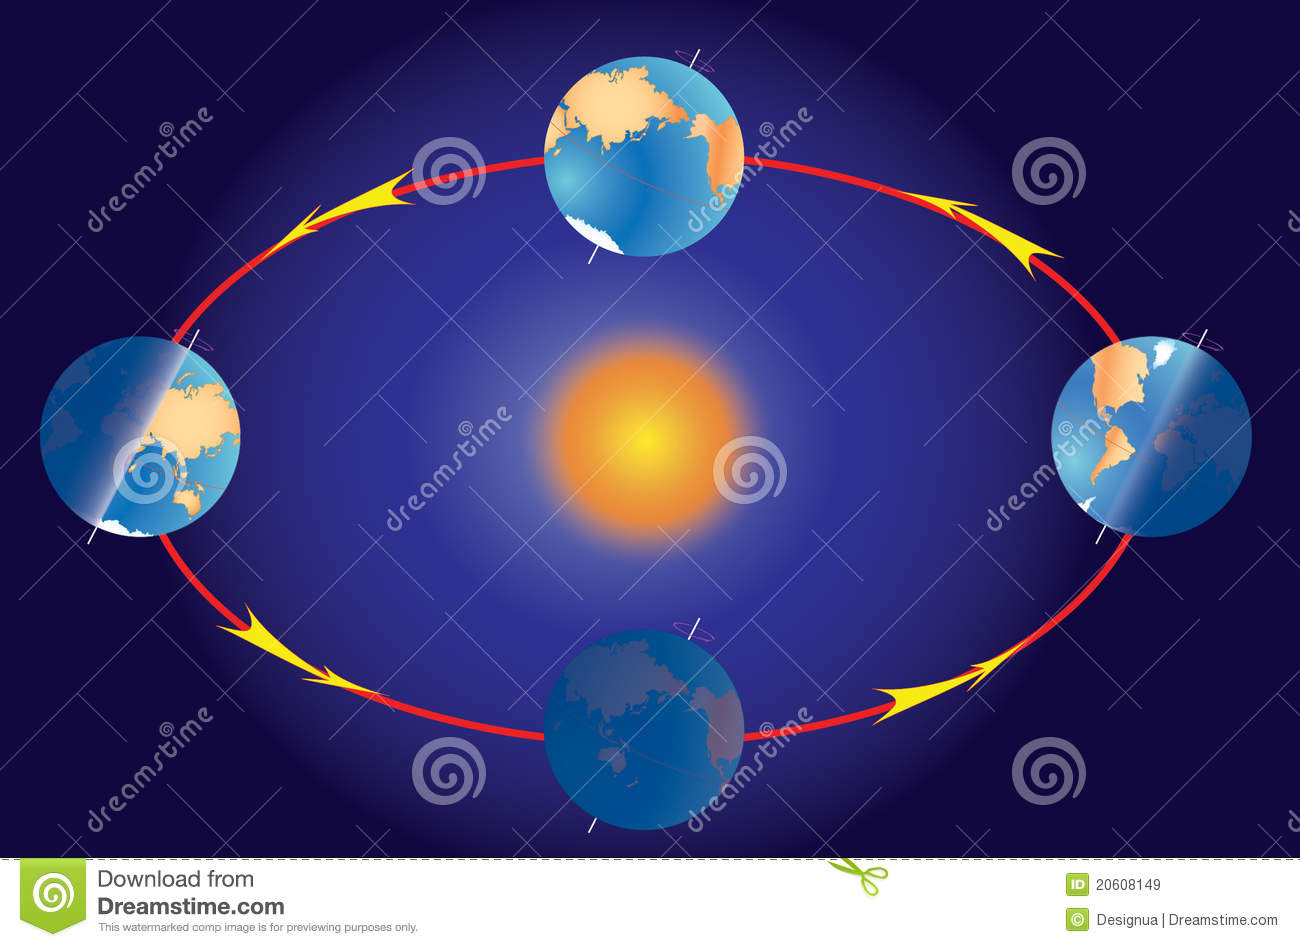 Season on planet earth. Equinox and solstice.